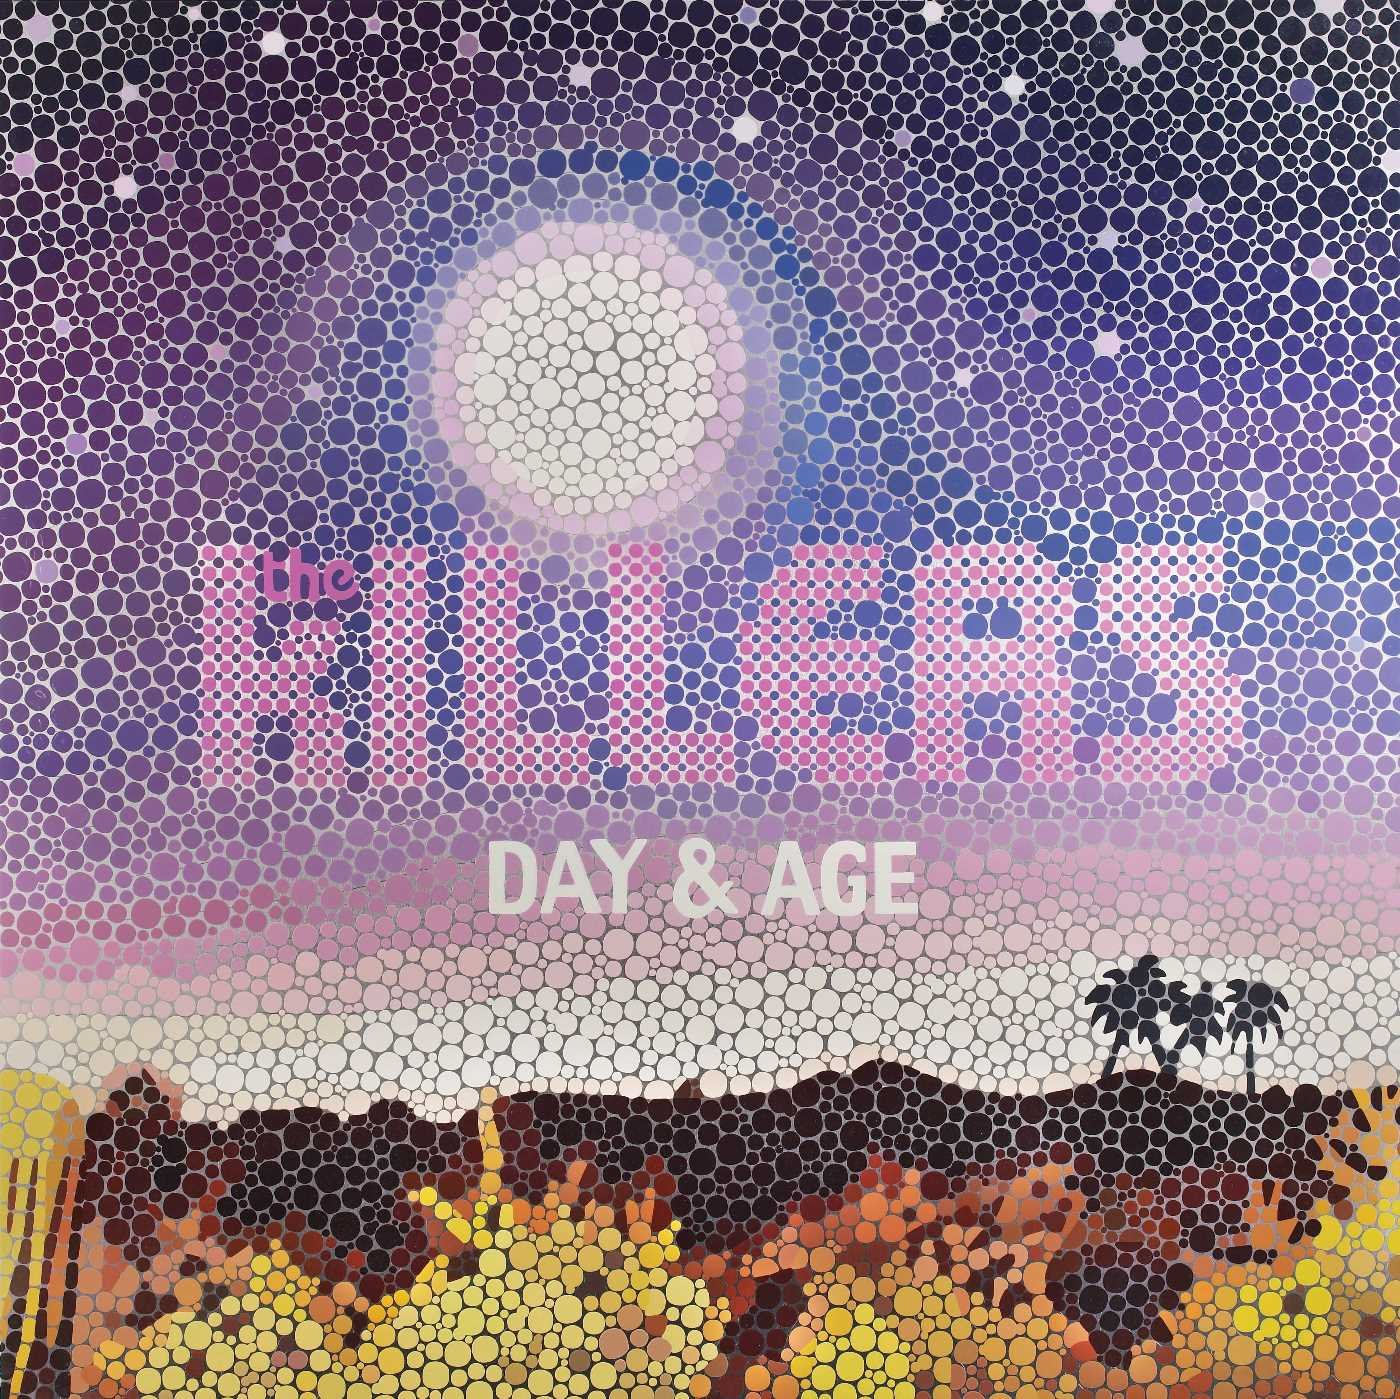 CD : The Killers - Day and Age